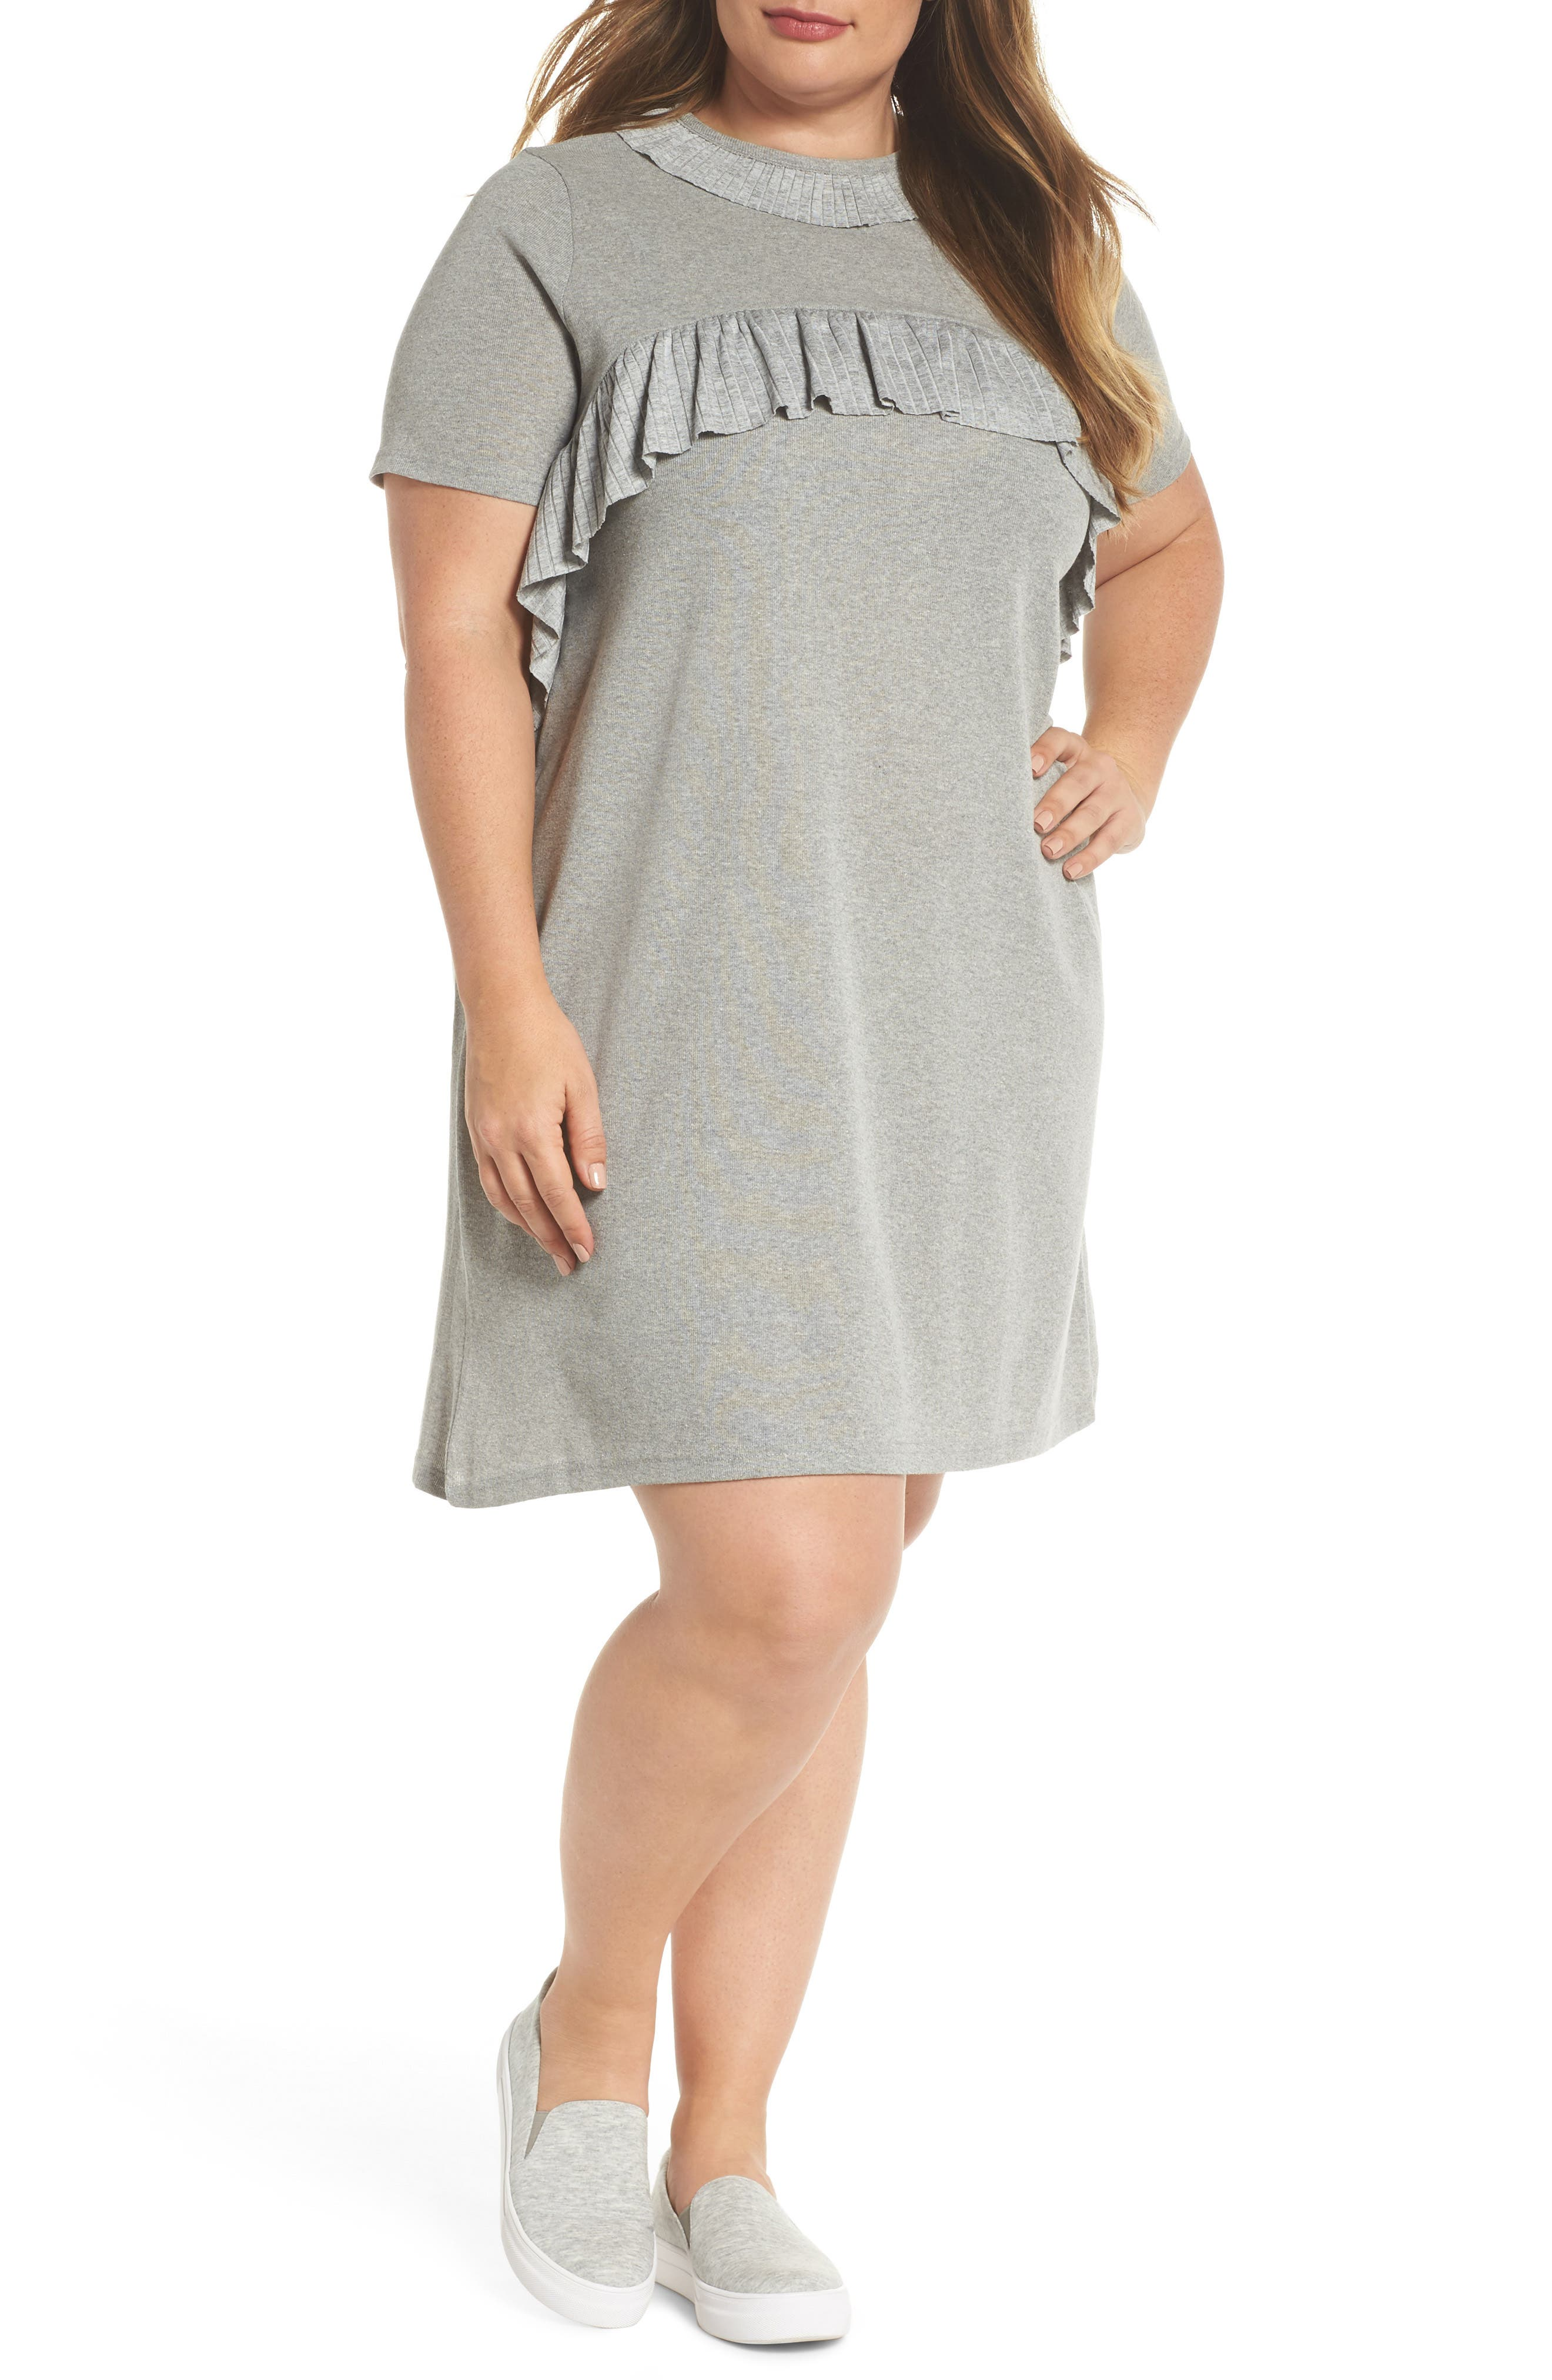 LOST INK Pleated Frill Swing Dress (Plus Size)